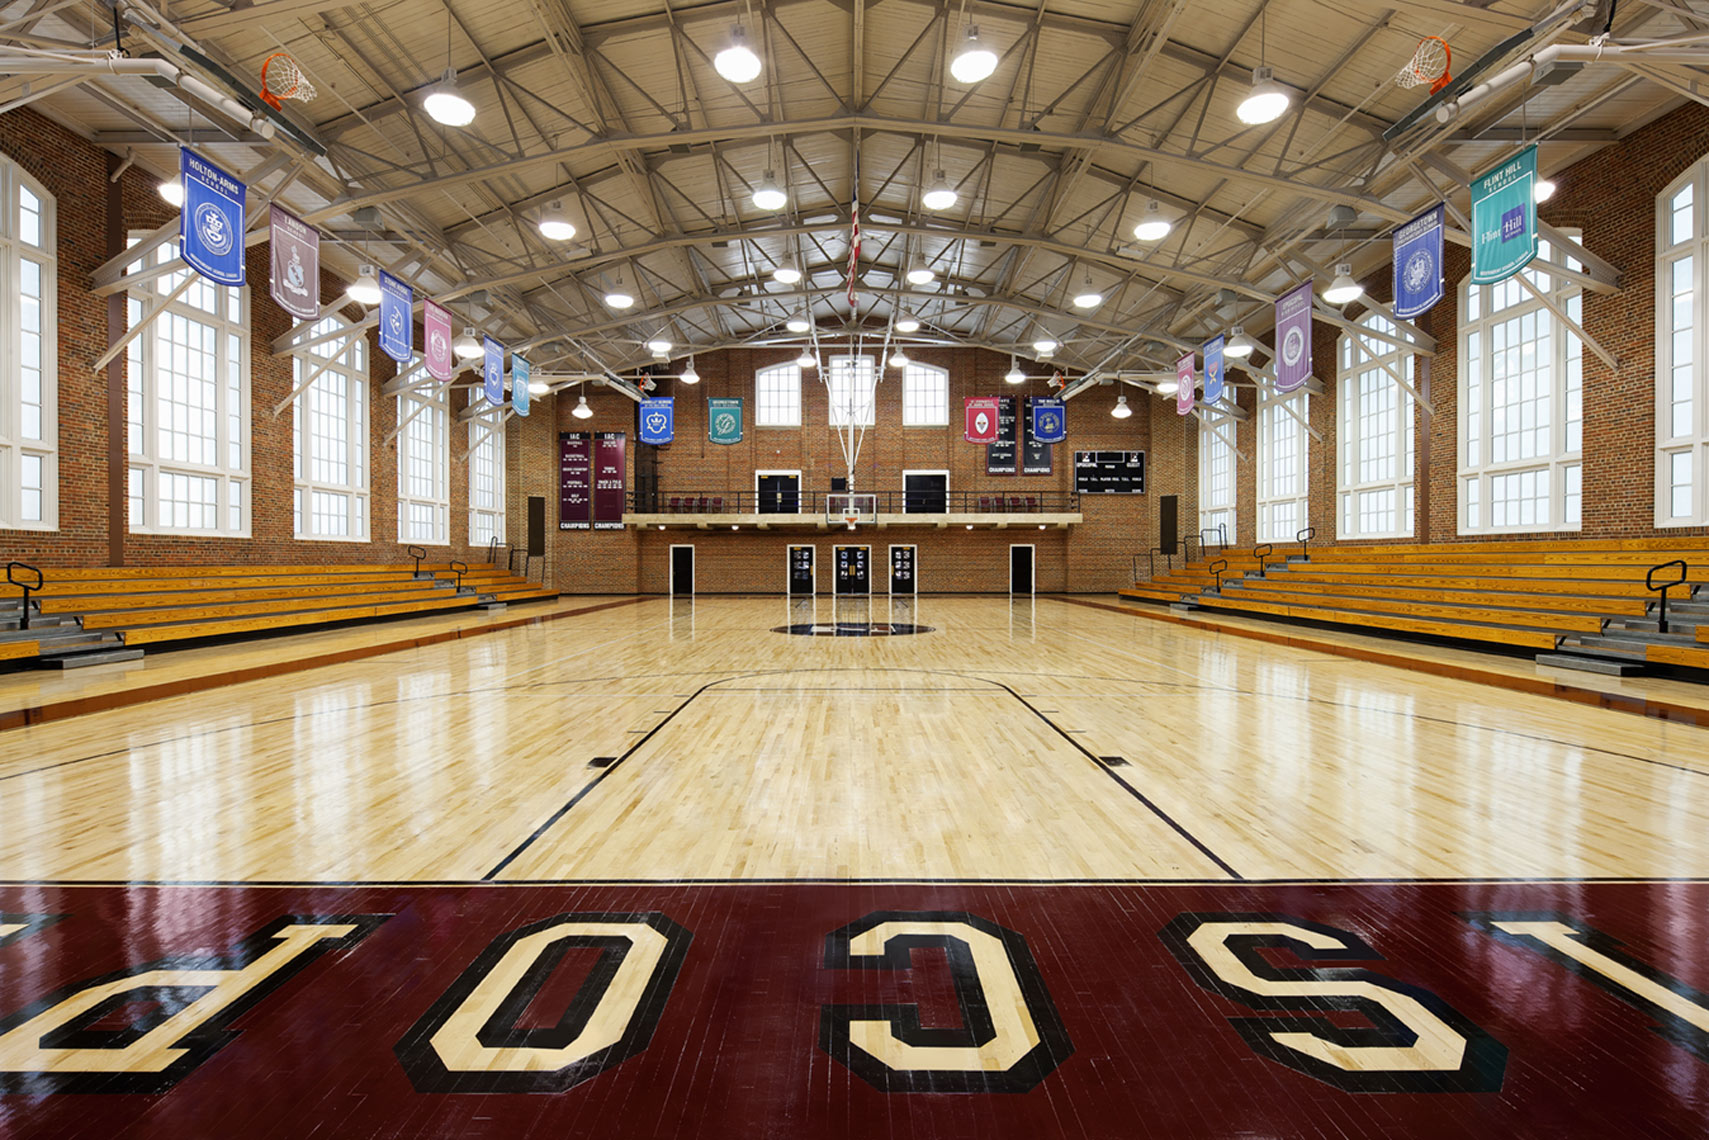 architectural photograph of a high school gym interior by Dan Poyourow